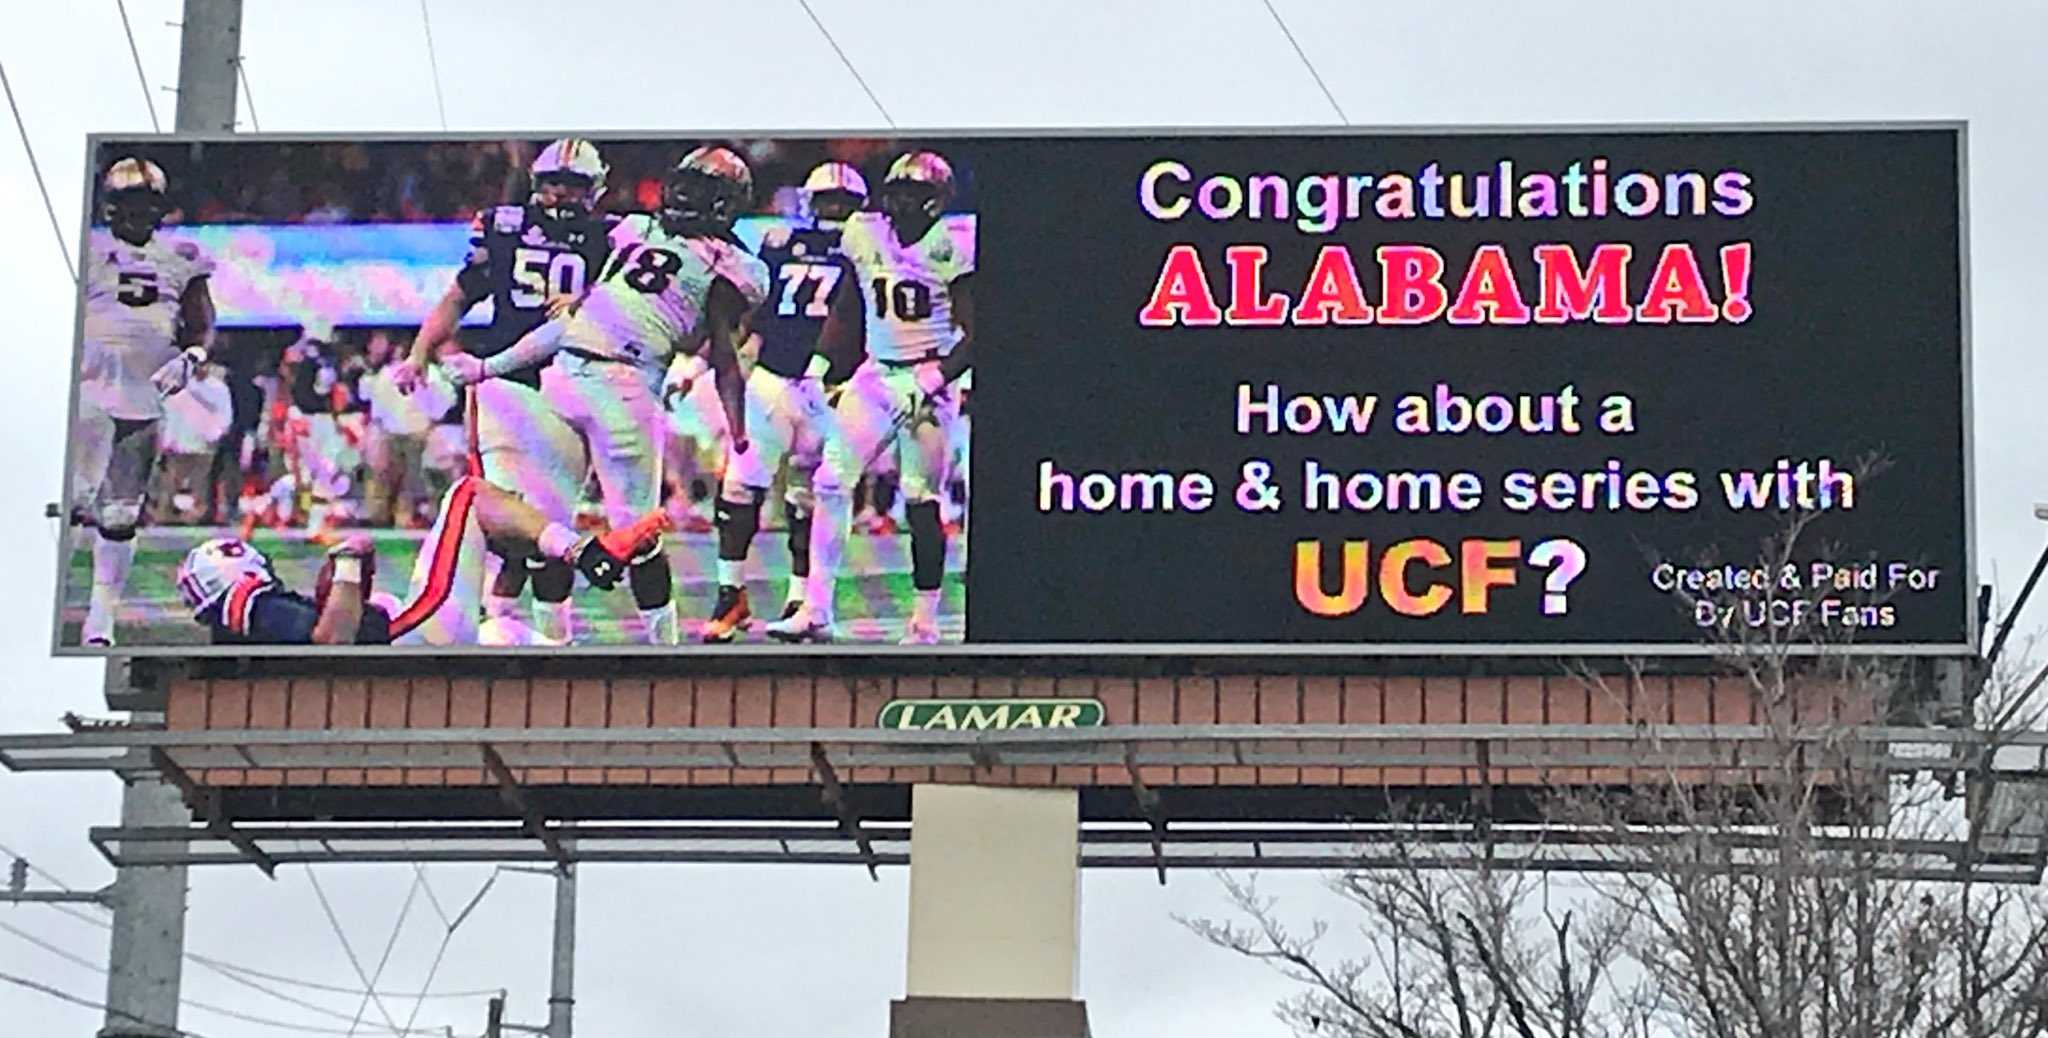 UCF fans buy Tuscaloosa billboard, make Crimson Tide an offer